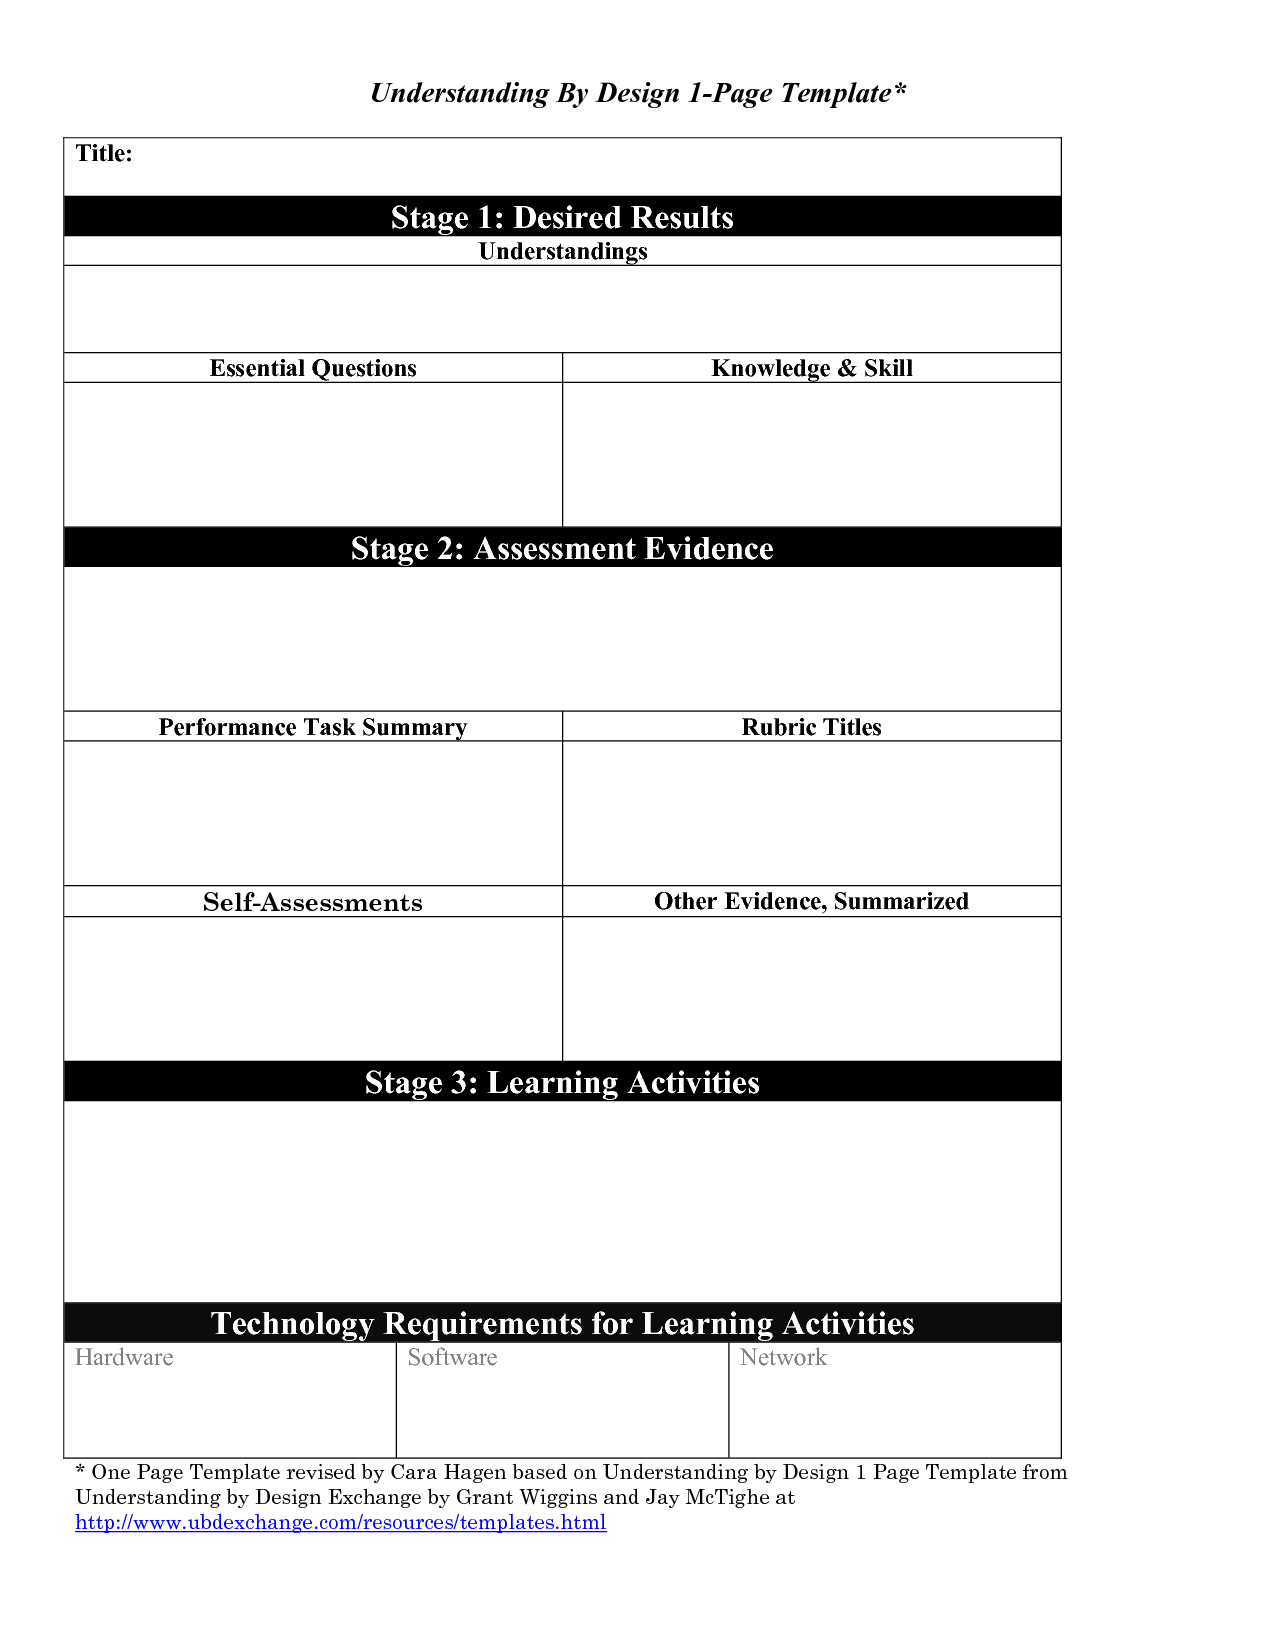 Understanding By Design 1 Page Template Doc Understanding By Design Template Classroom Ideas